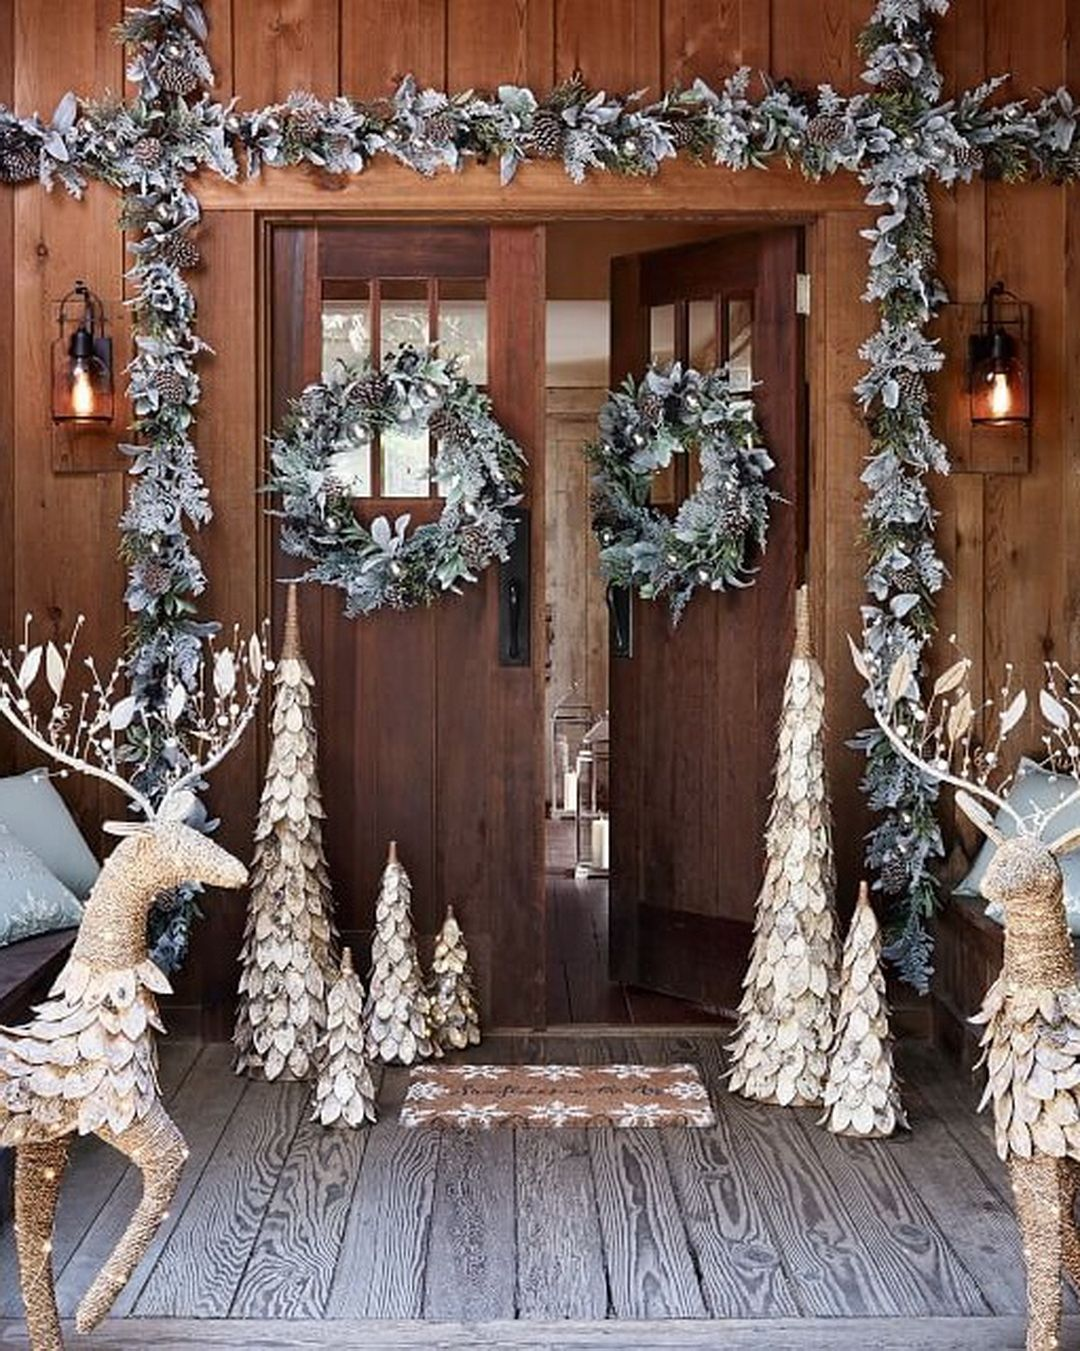 27 Exceptional Outdoor Christmas Decorations Potterybarn Christmas Door Decorations Outdoor Christmas Decorations Pretty Christmas Decorations